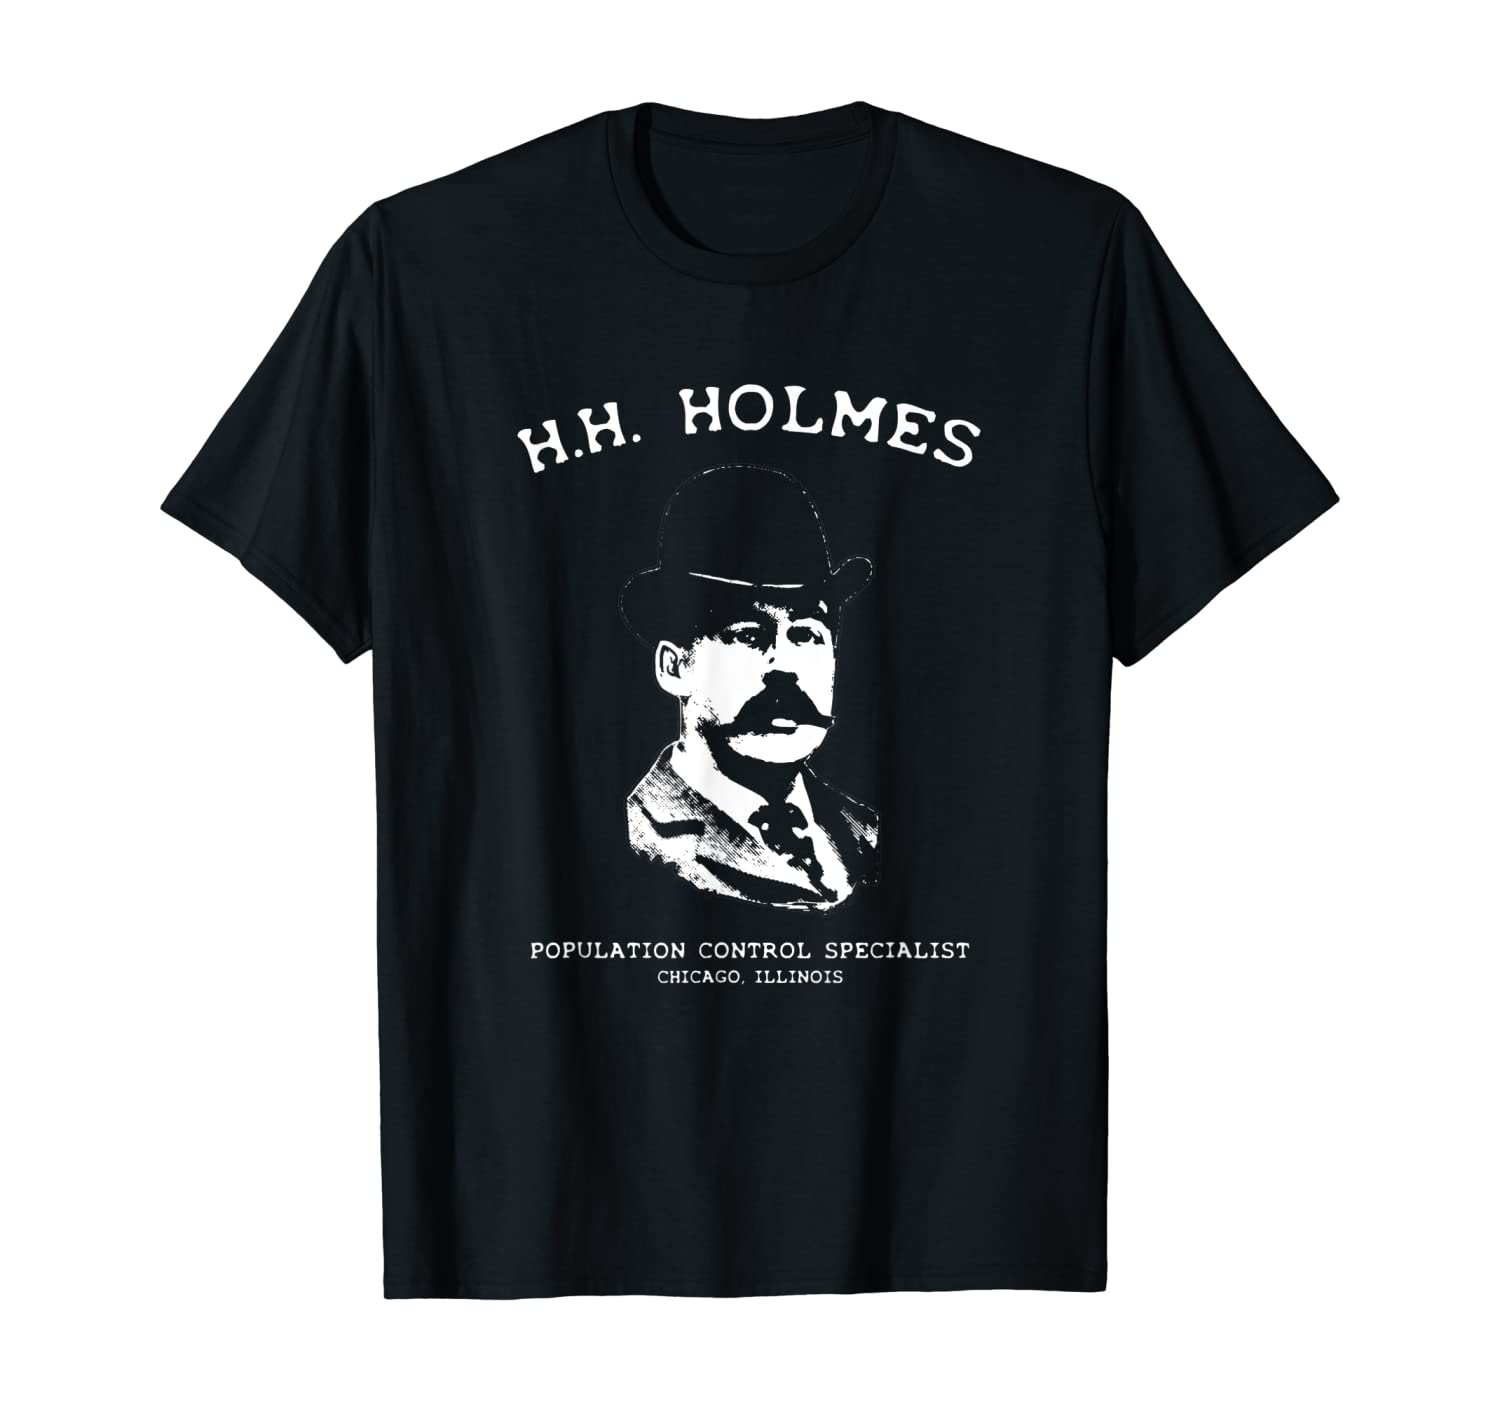 H.H. Holmes Population Control Specialist